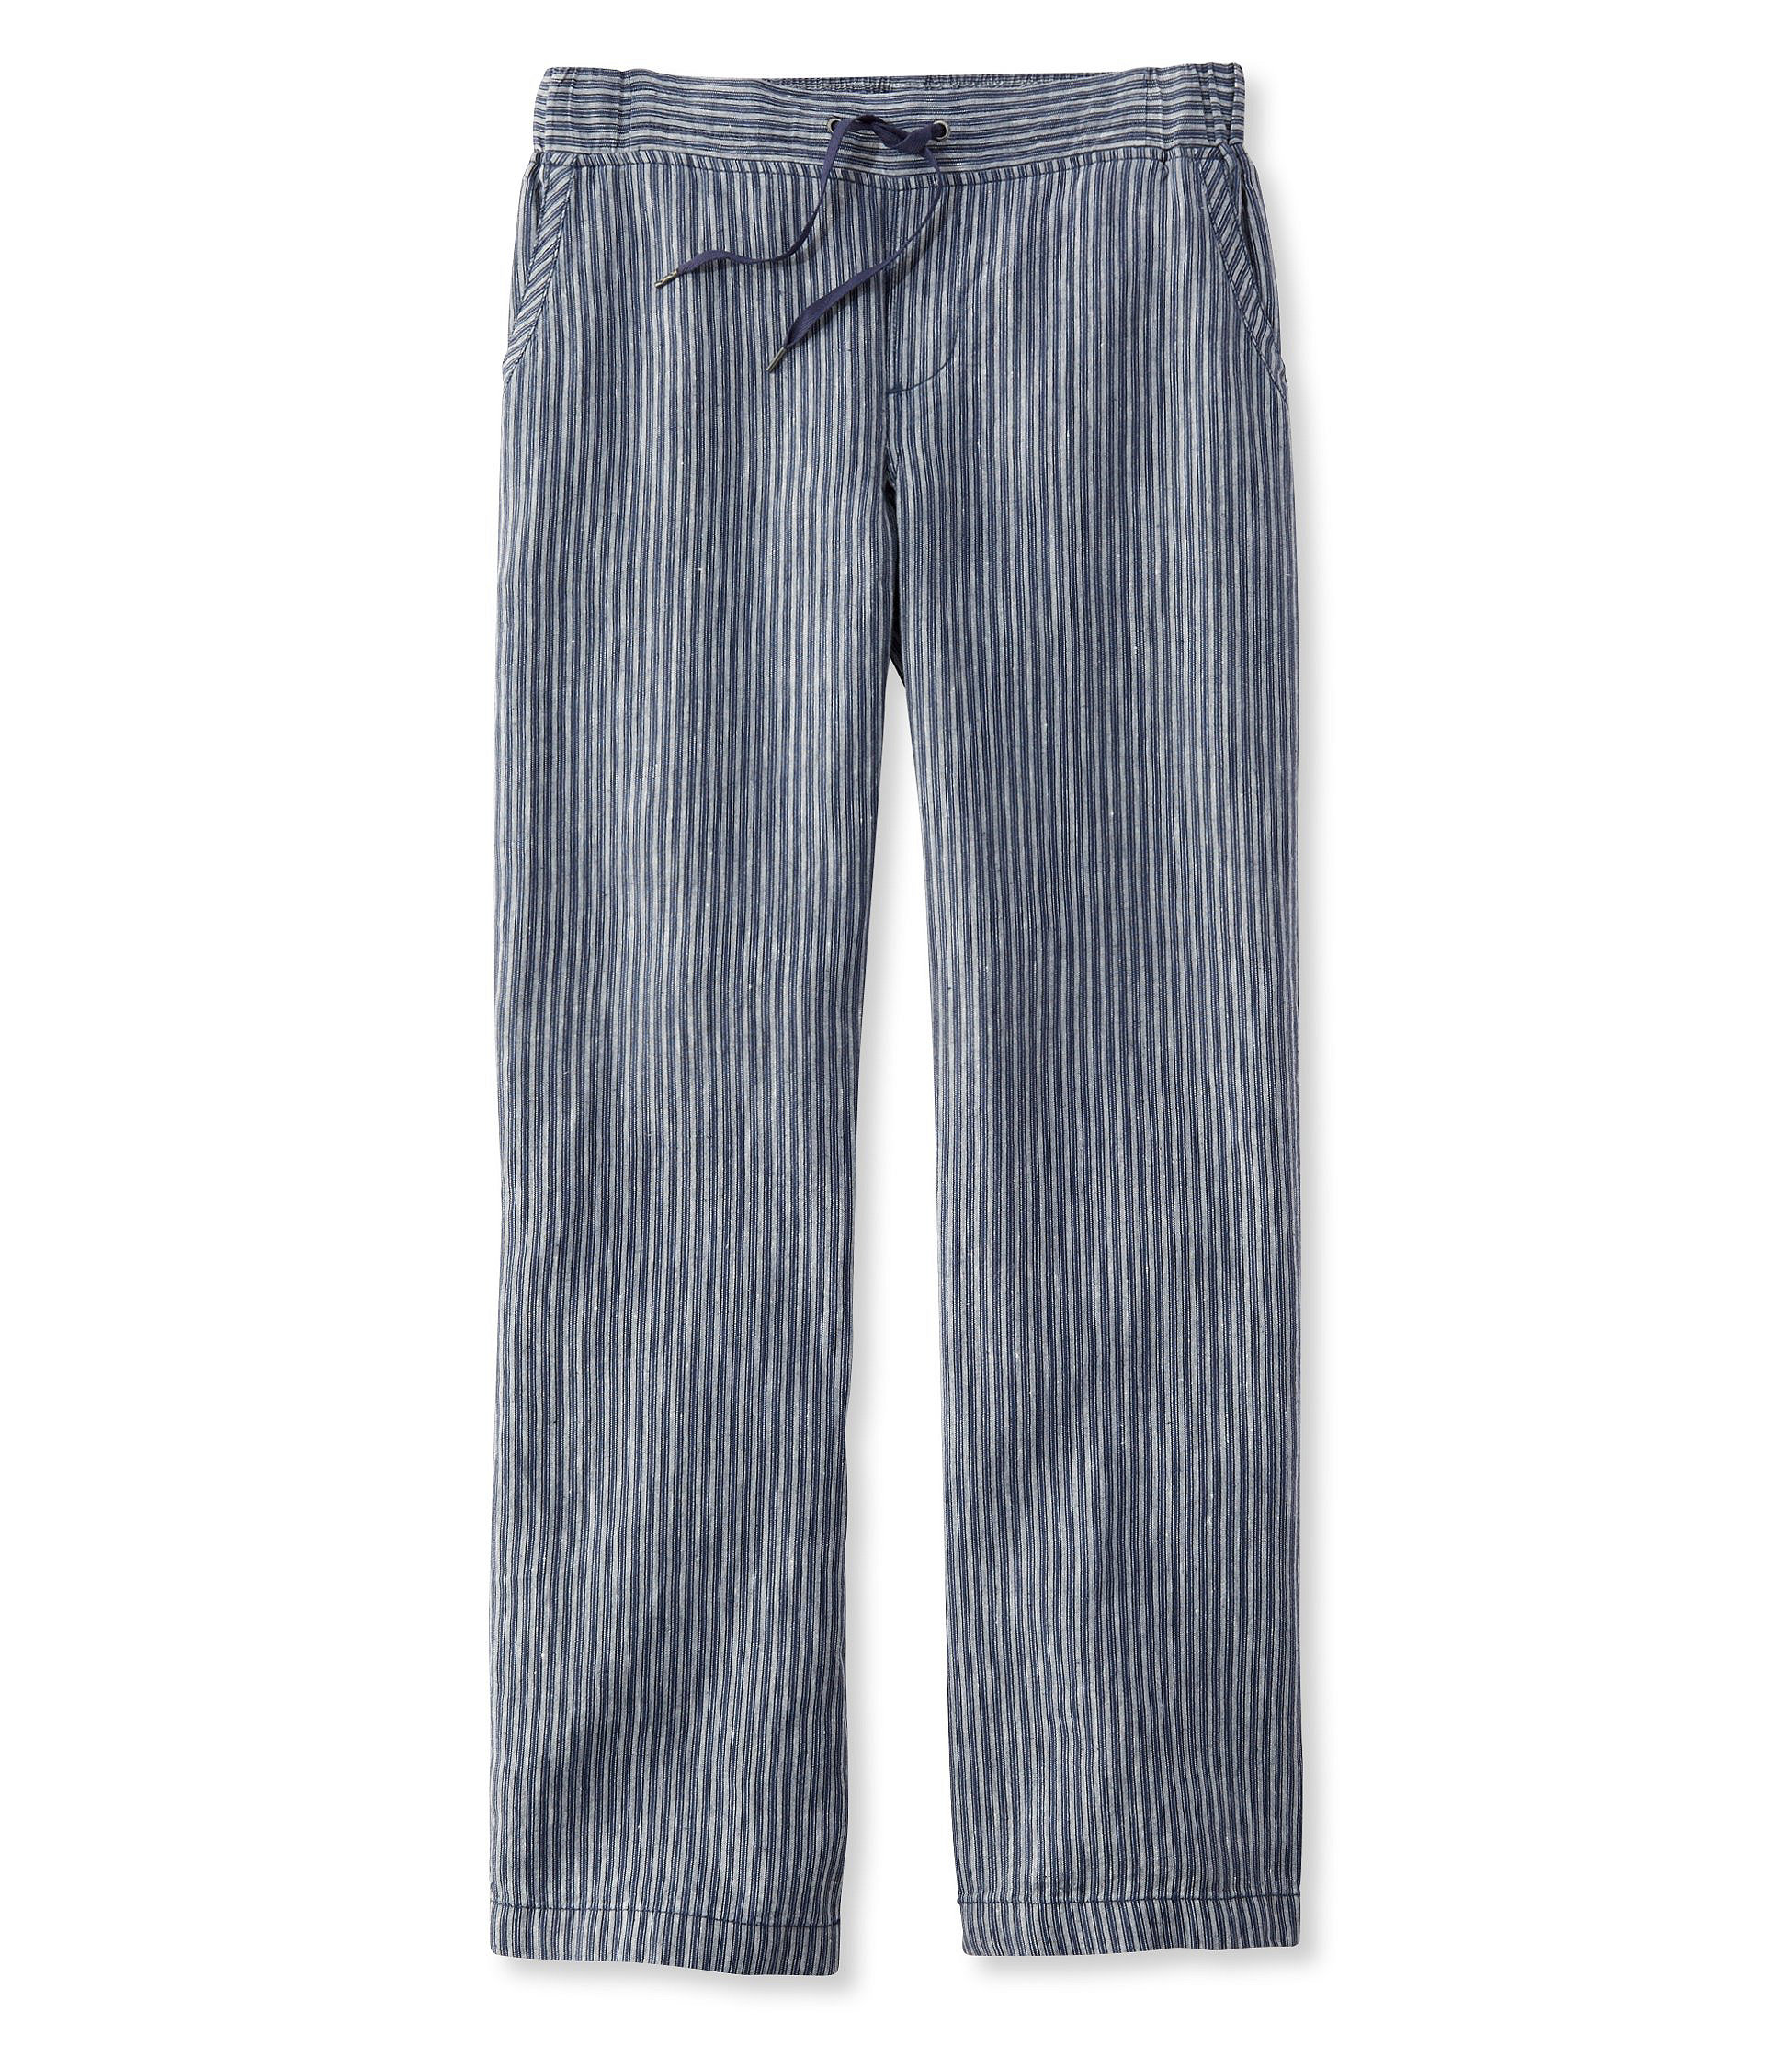 Premium Washable Linen Pants, Stripe by L.L.Bean